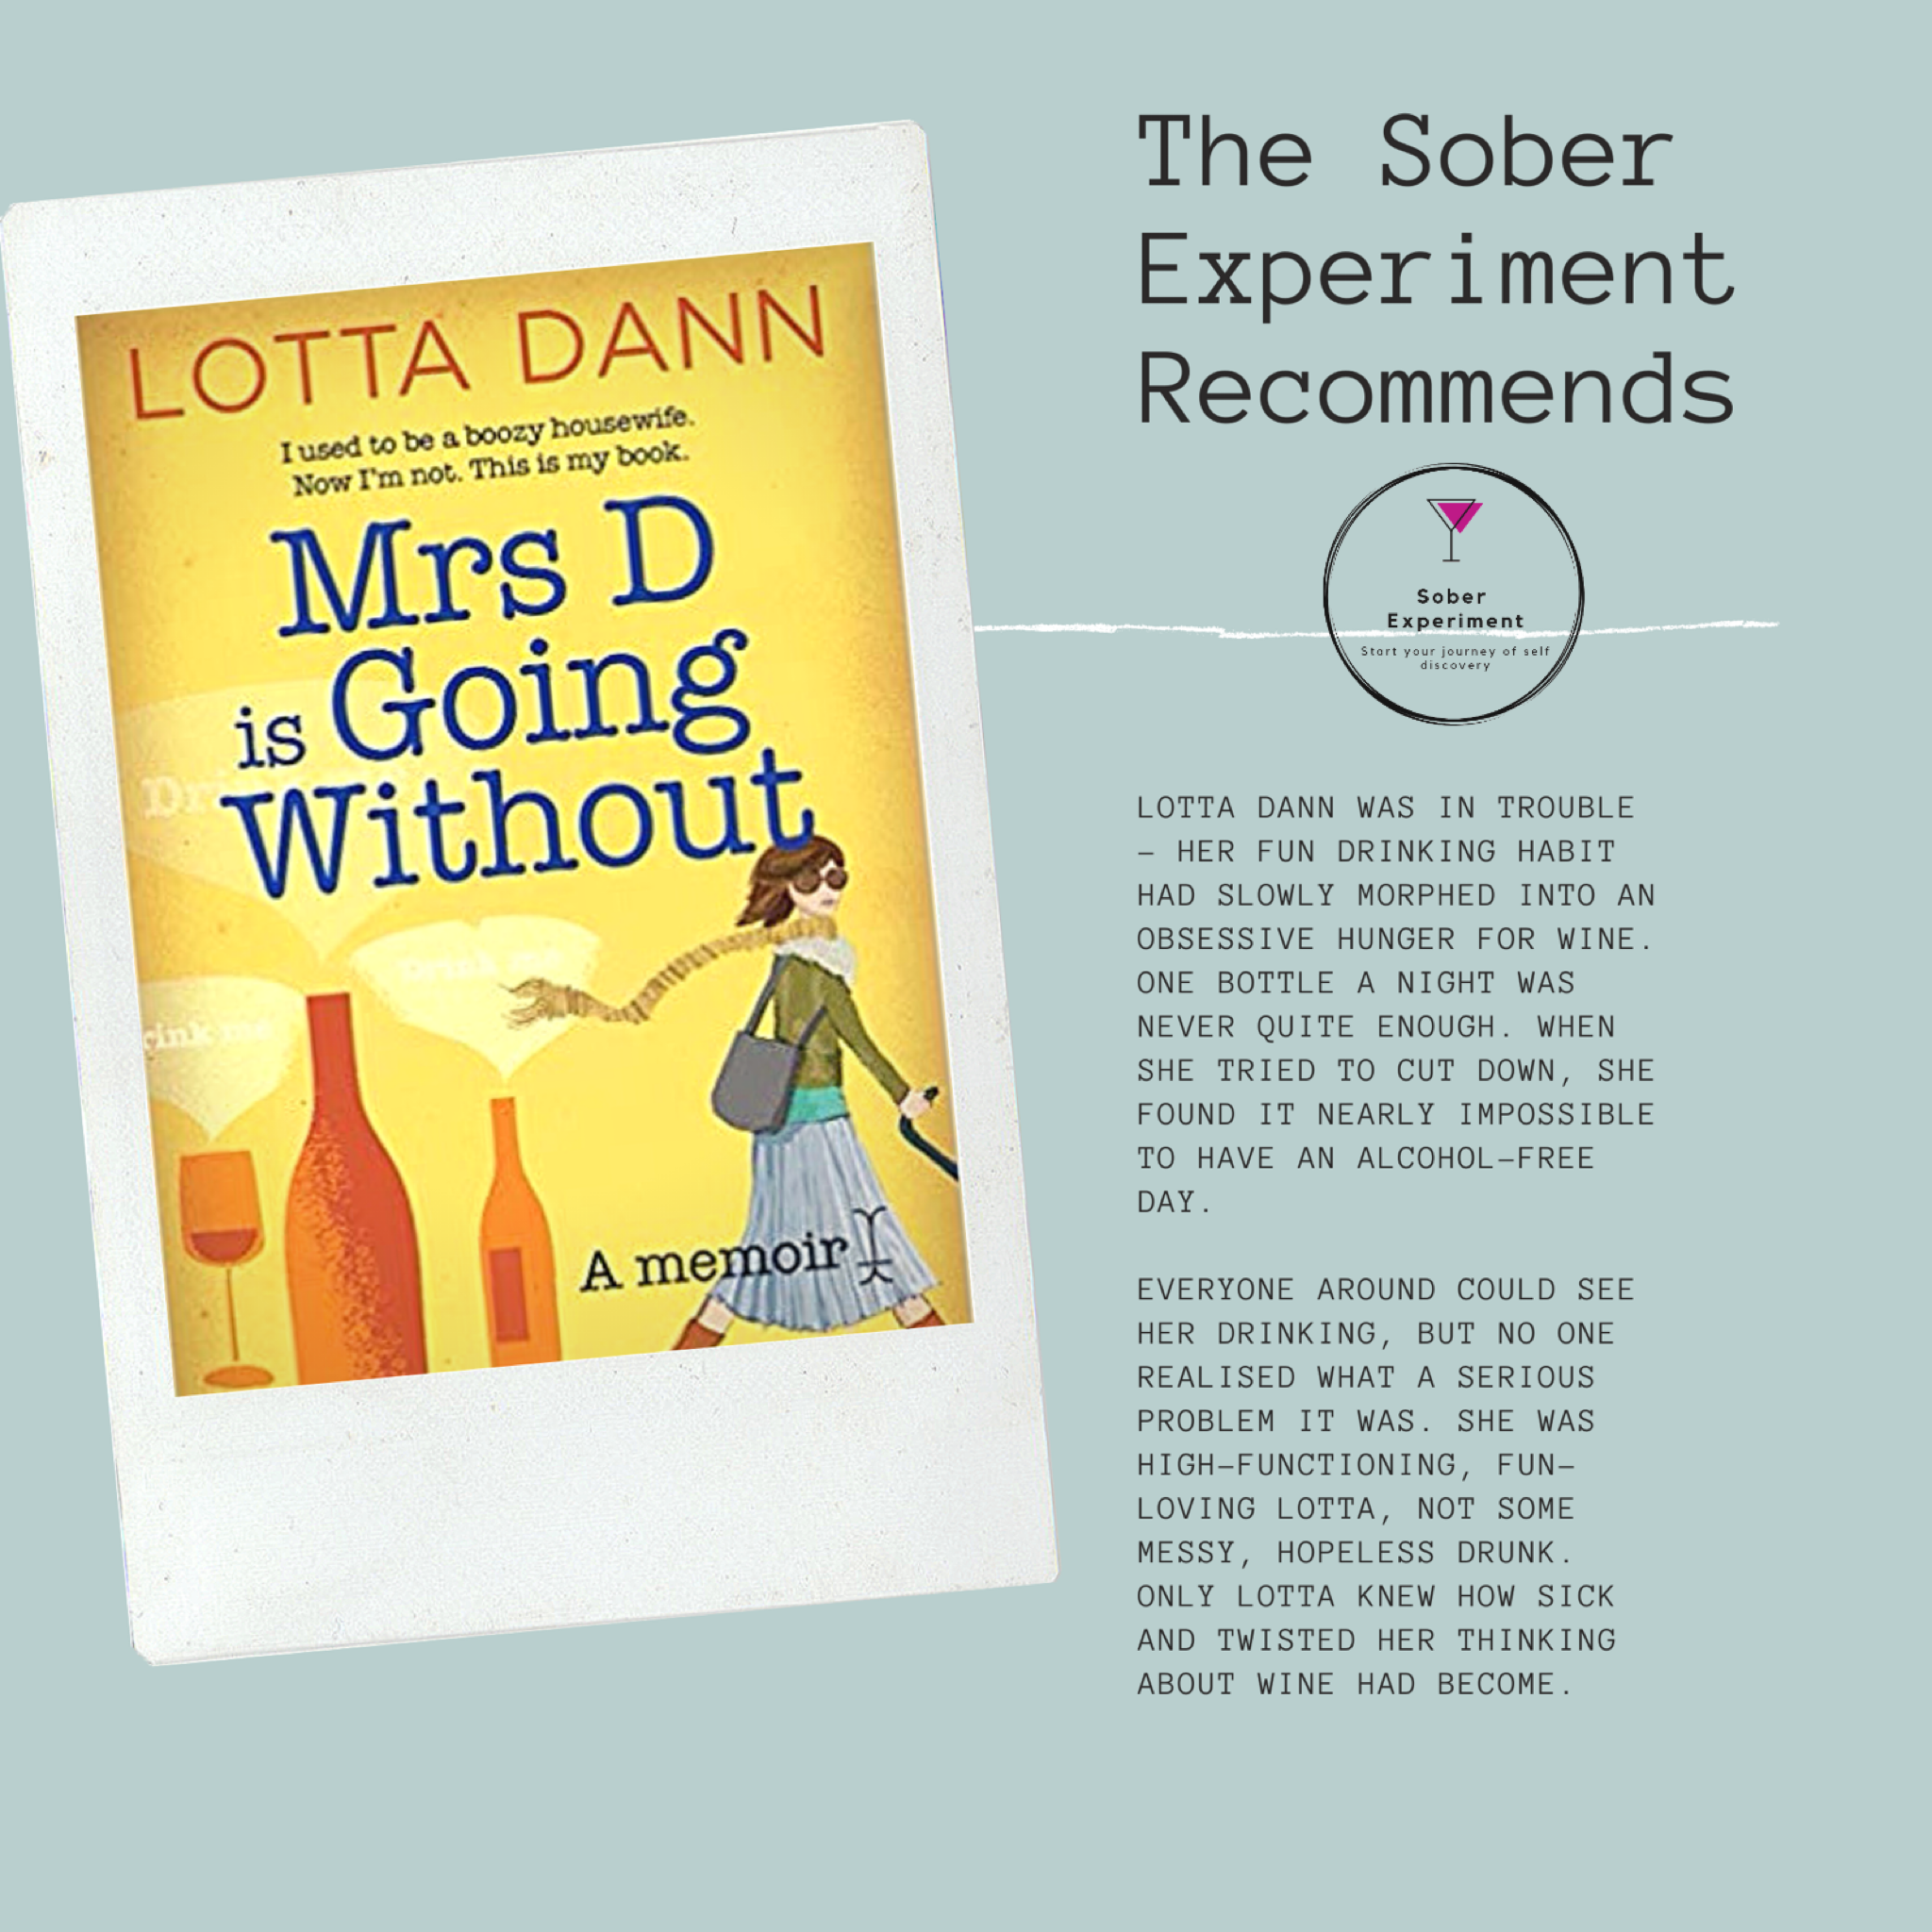 The Sober Experiment Recommends Mrs D is Going Without by Lotta Dann